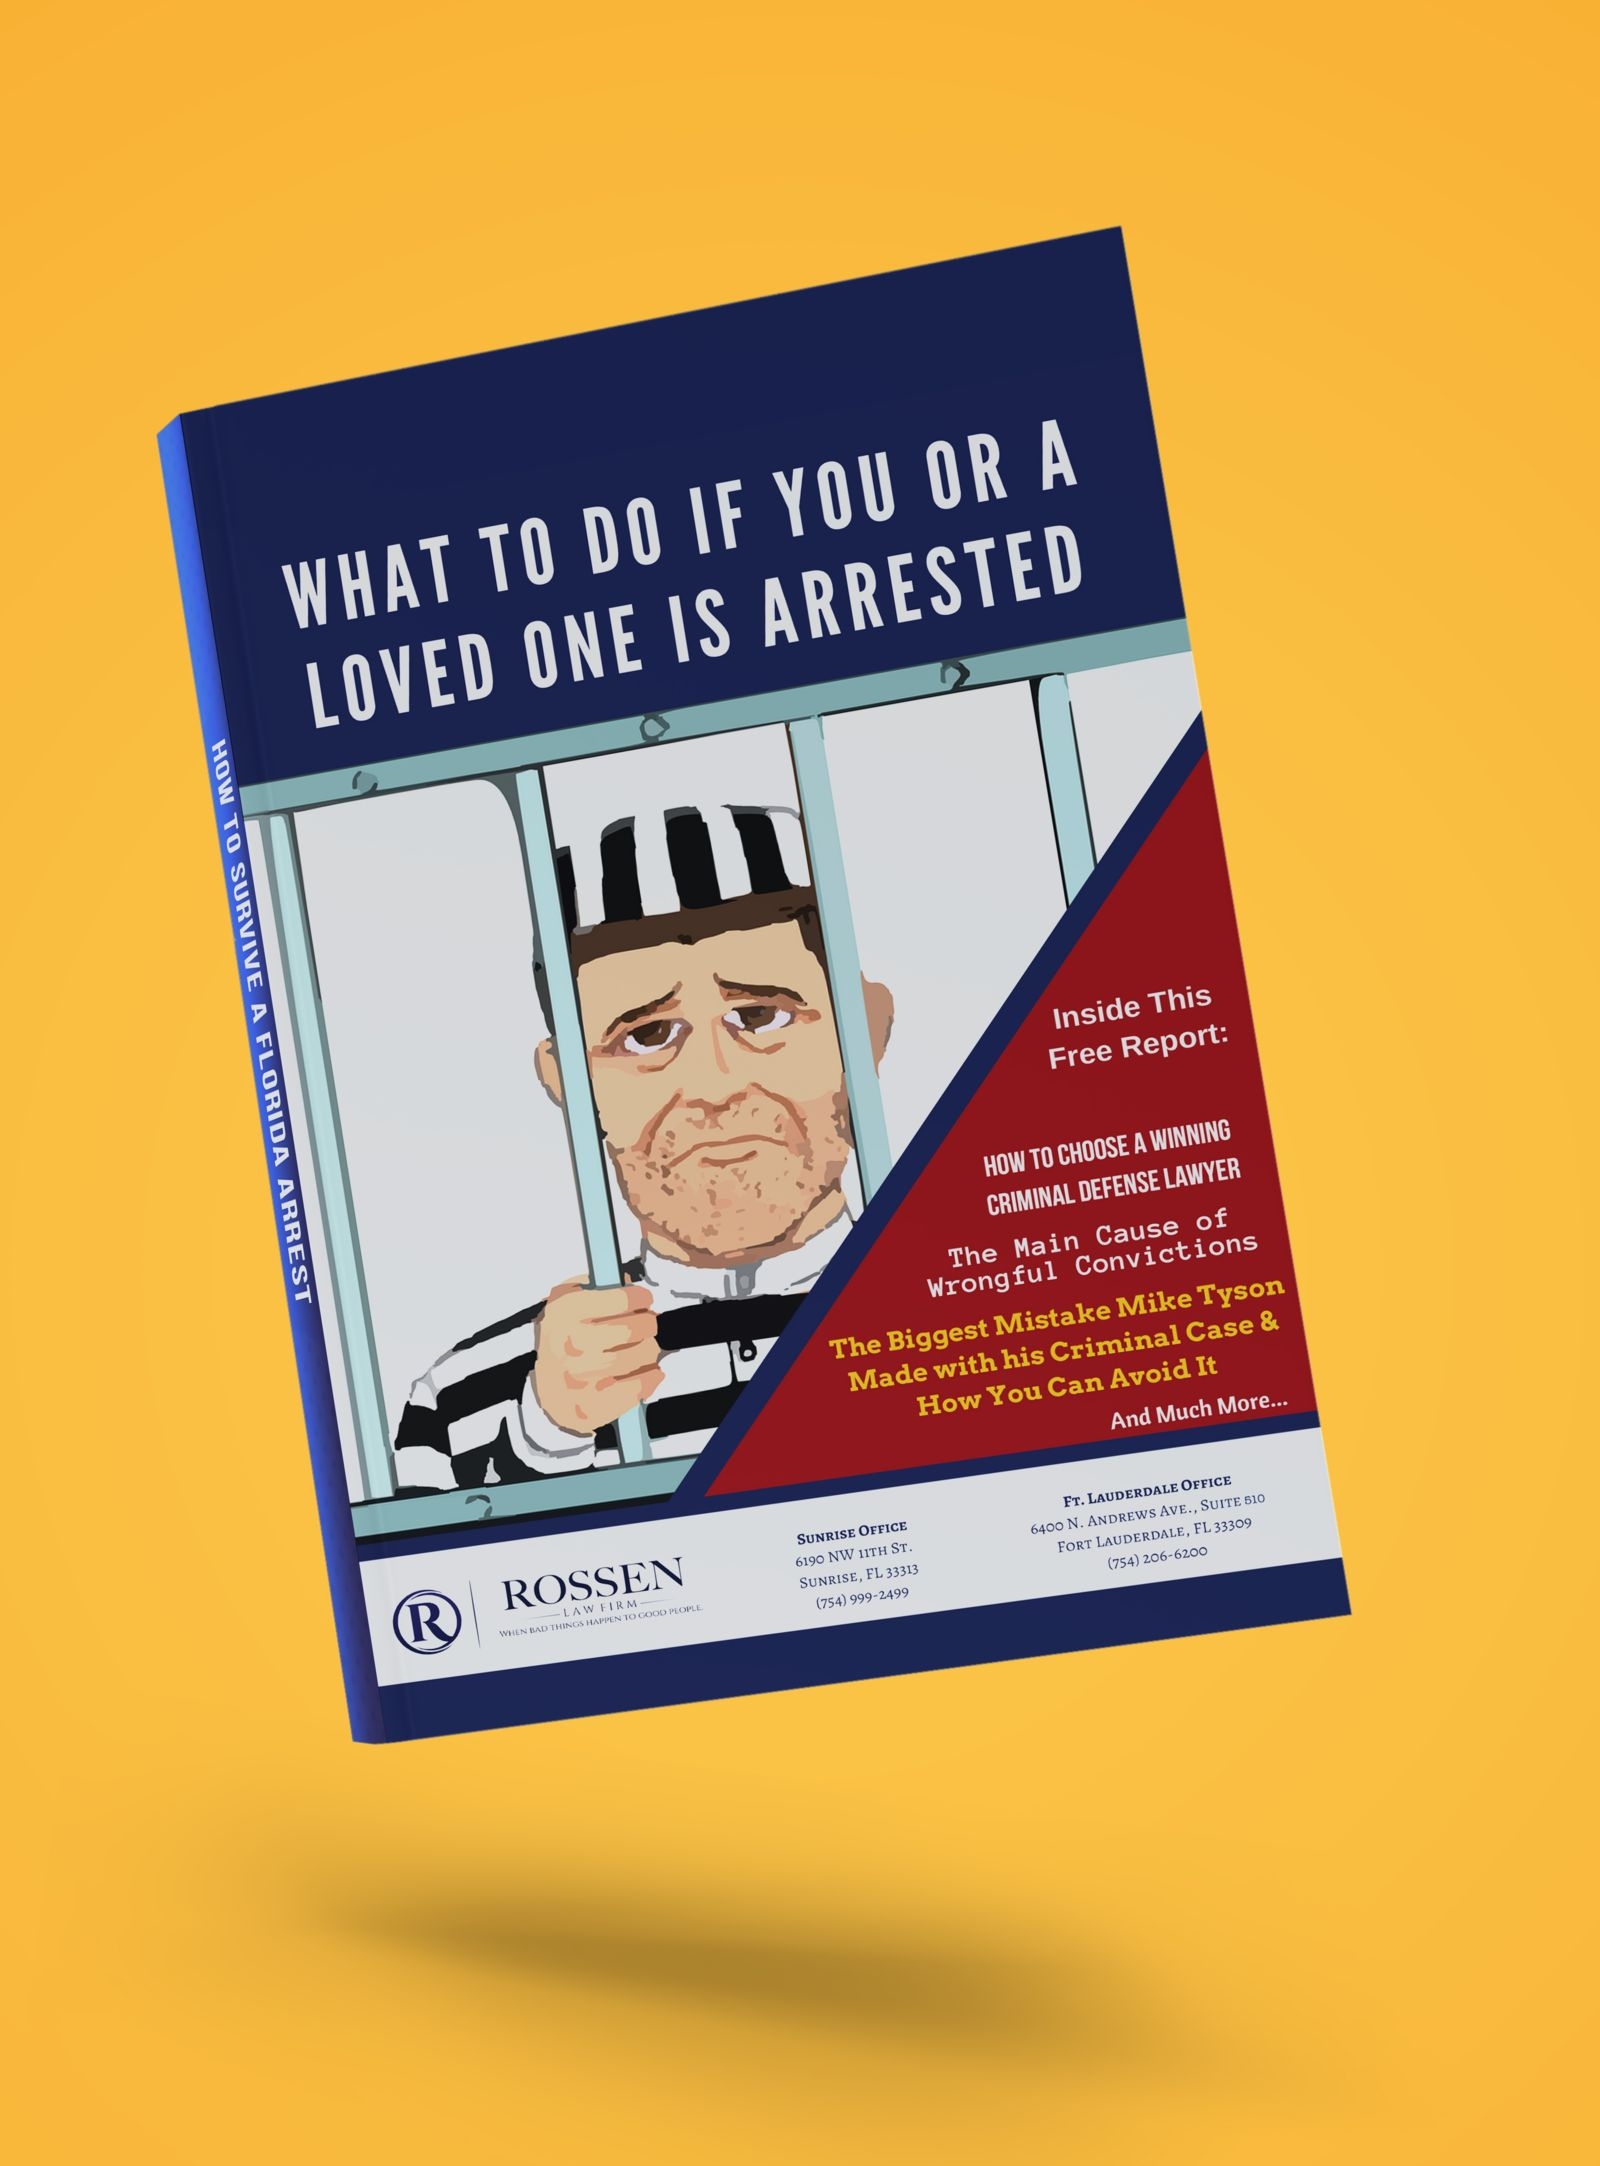 Booklet art titles: What to do if you or a loved one is arrested in South Florida